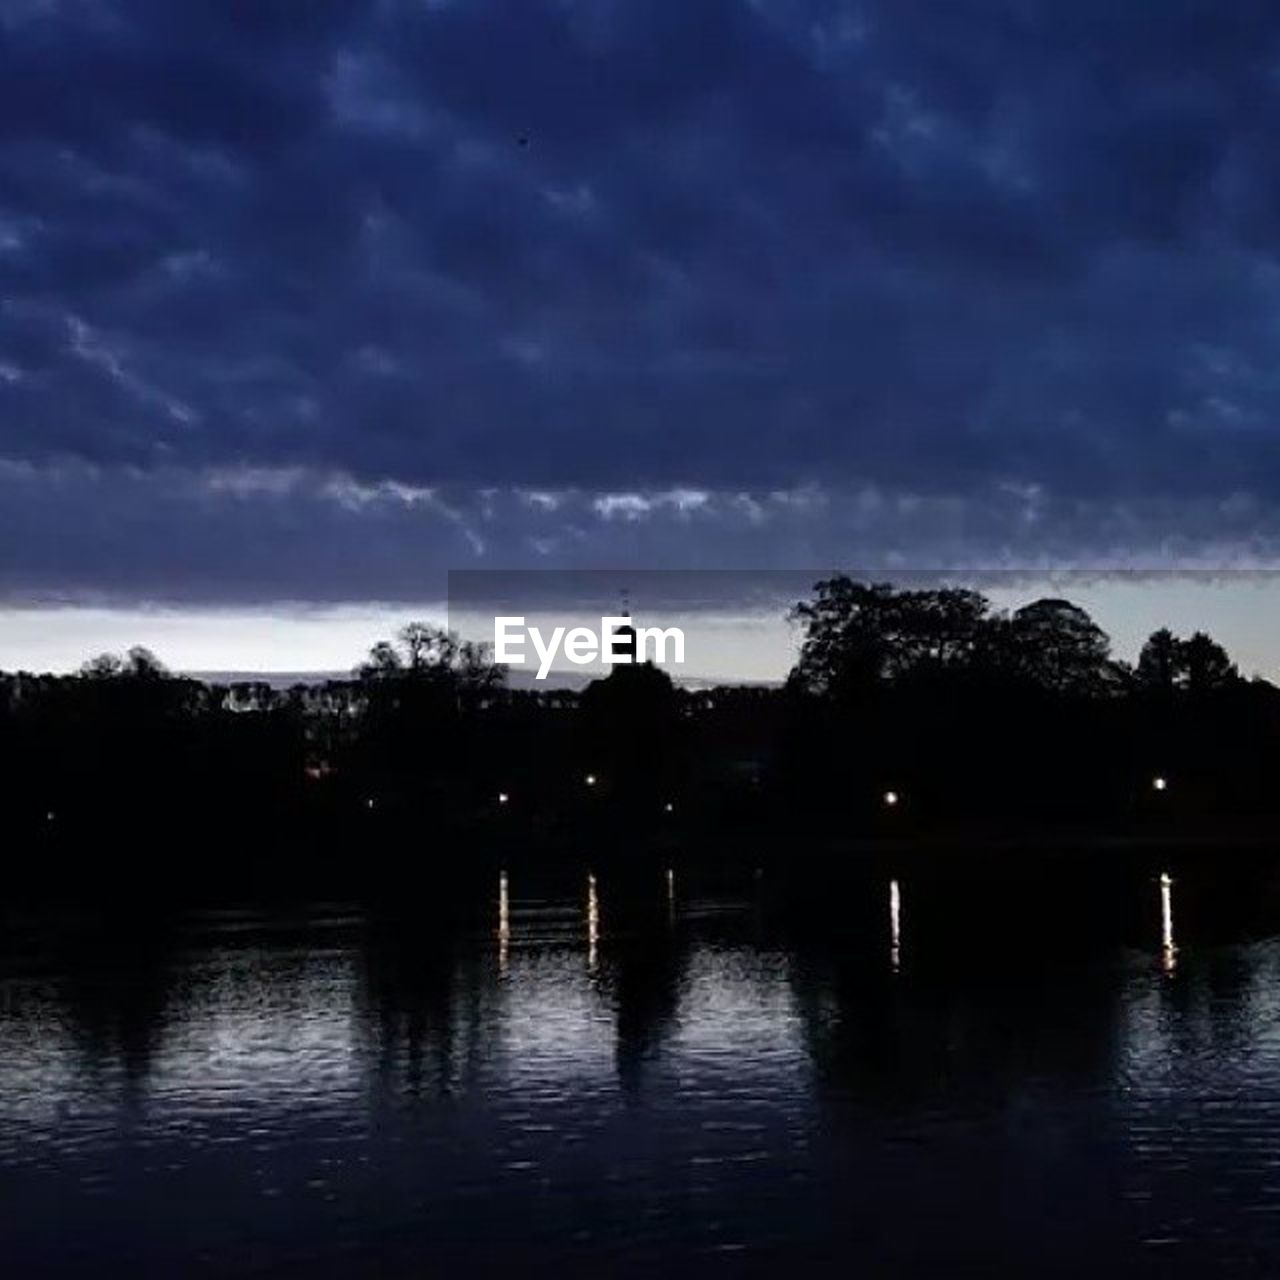 silhouette, cloud - sky, reflection, sky, water, outdoors, tree, building exterior, no people, night, architecture